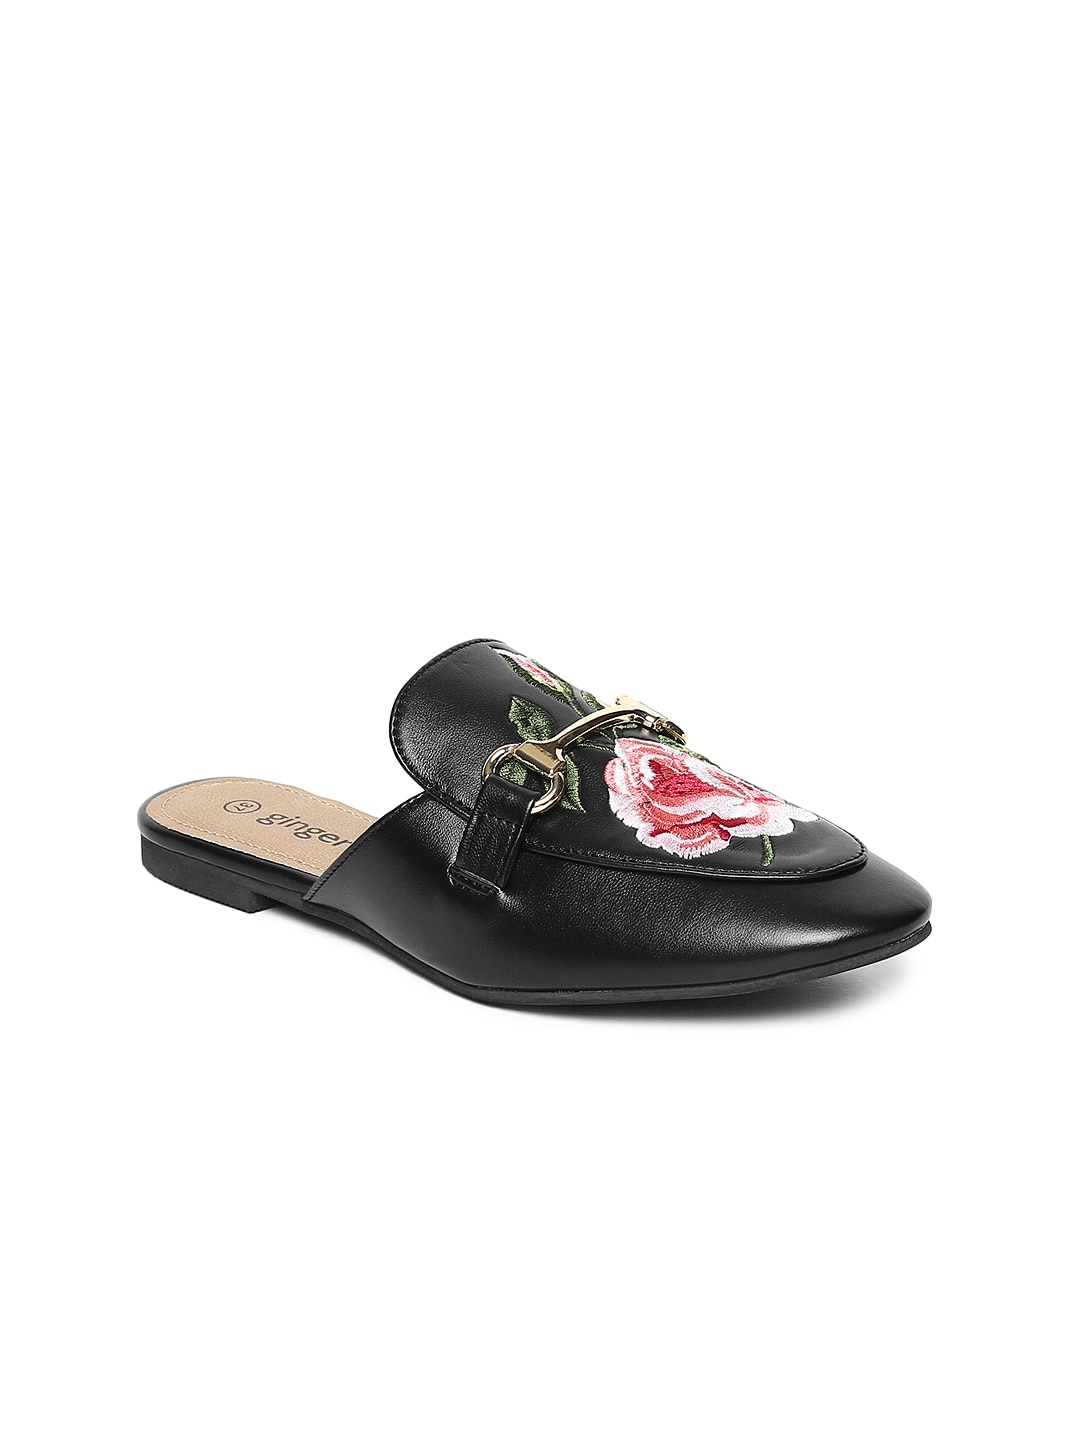 4fcc6f0ec58 Shoes Of Forca Shoe - Buy Shoes Of Forca Shoe online in India